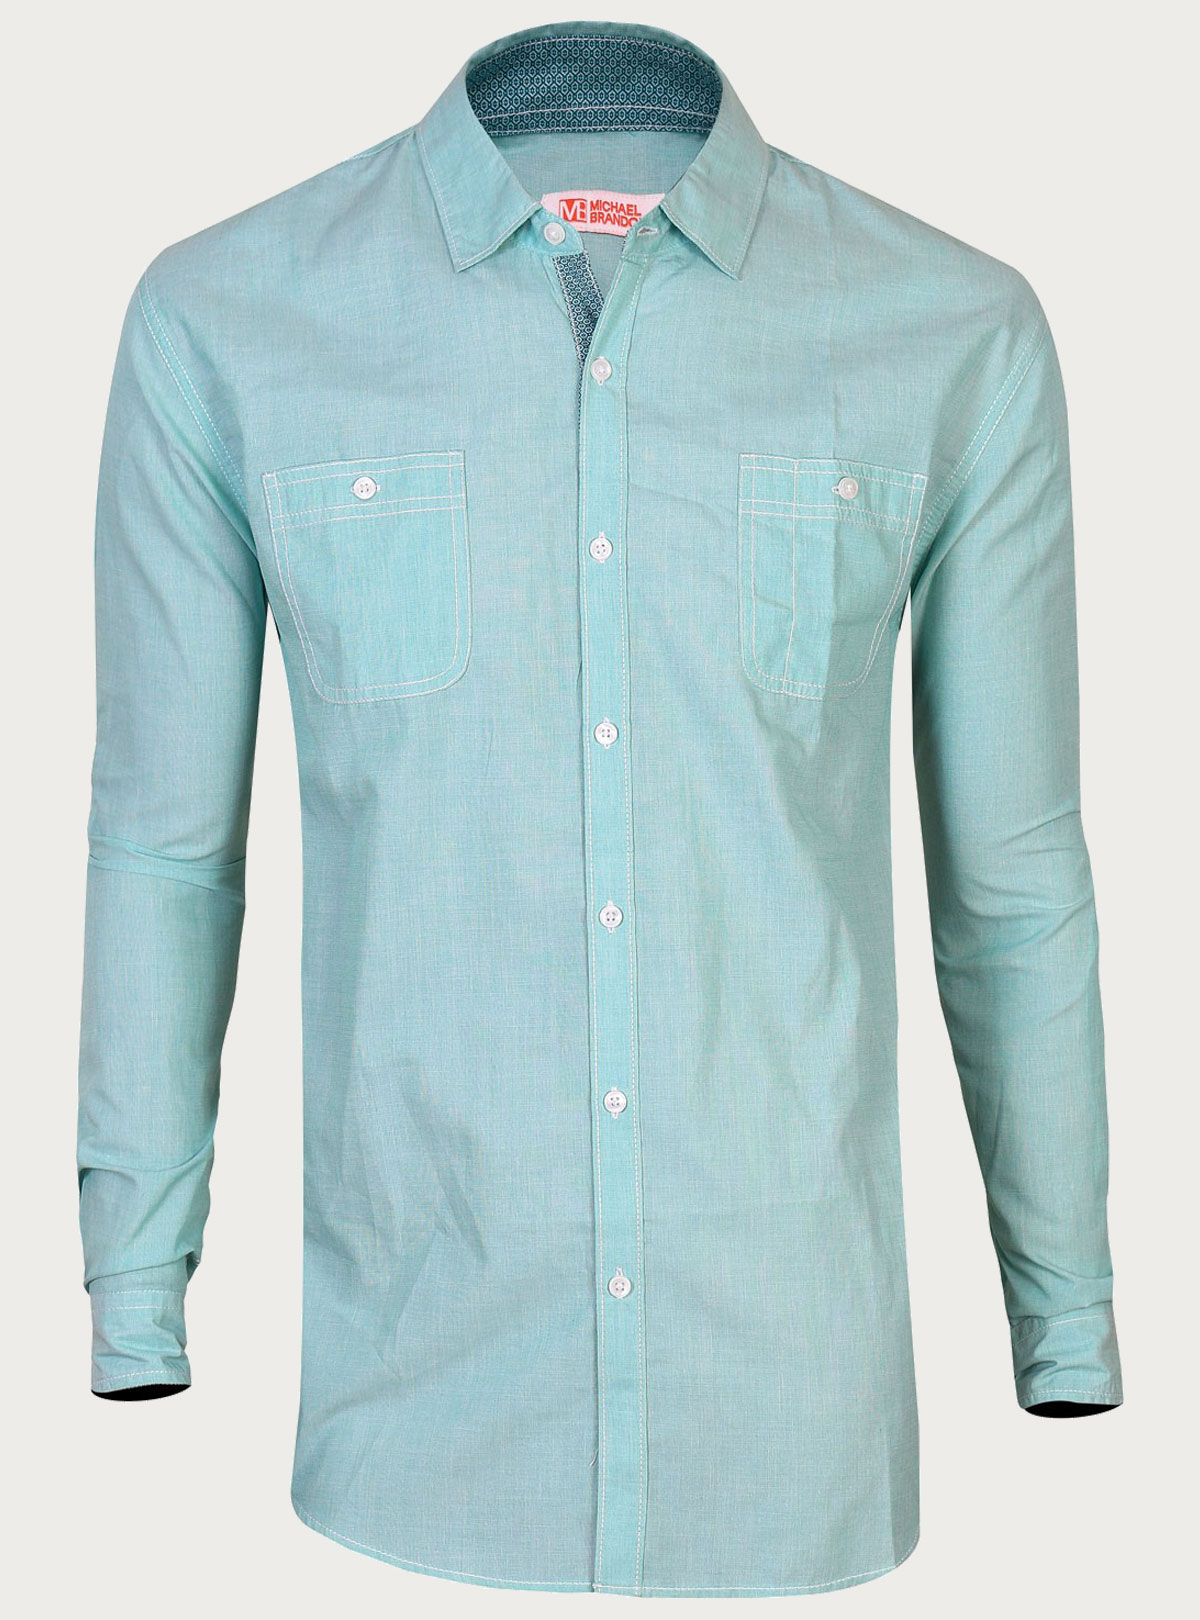 STYLISH CASUAL SHIRT BY - MICHEL BRANDON